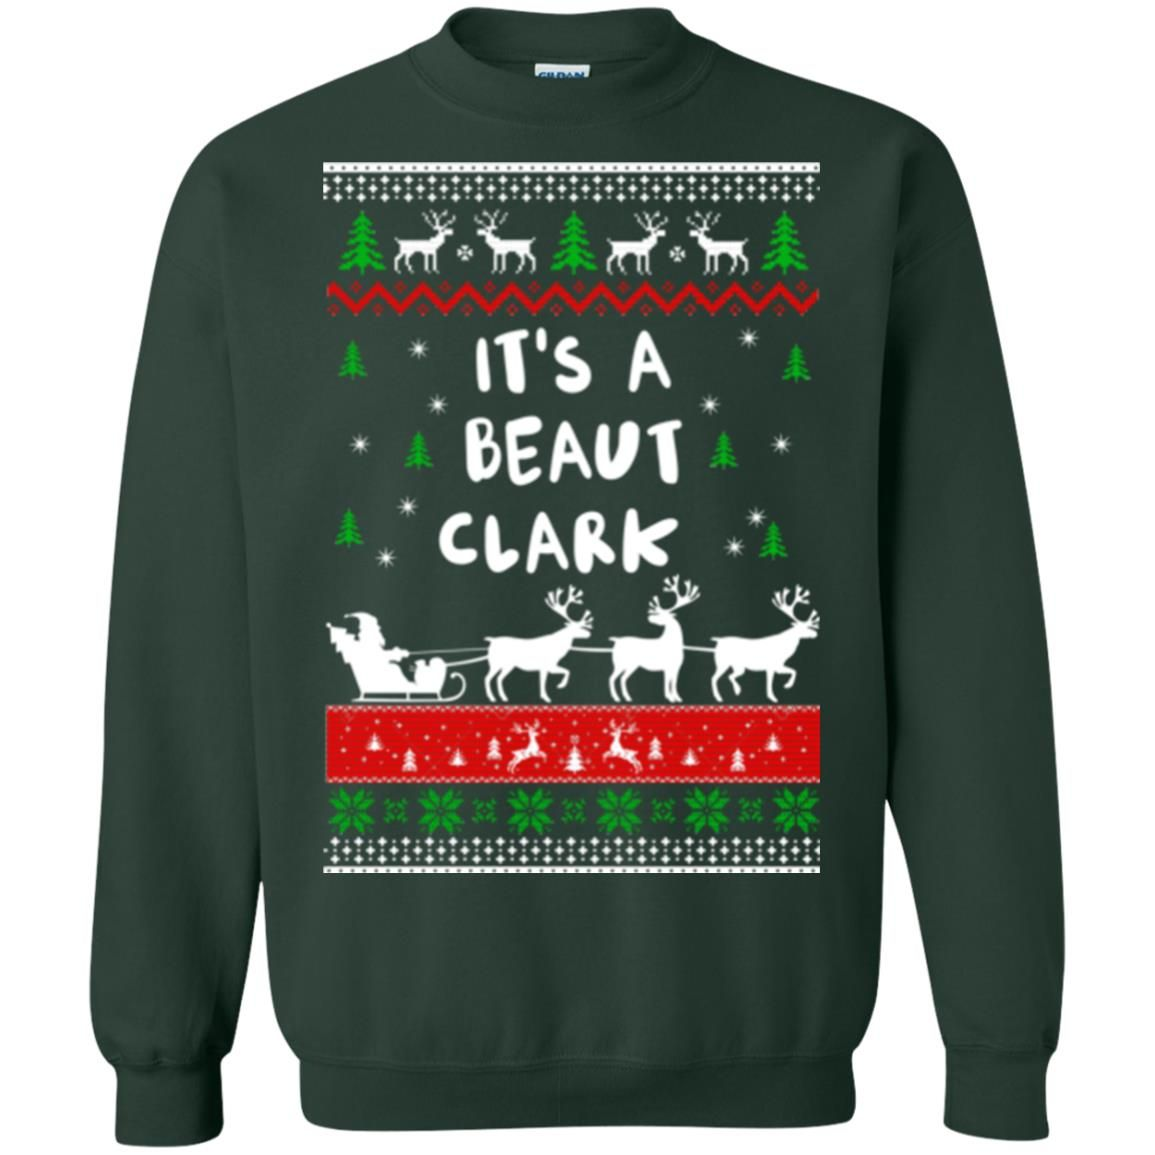 image 1786 - Griswold Sweatshirt It's-a Beaut Clark ugly sweater, hoodie